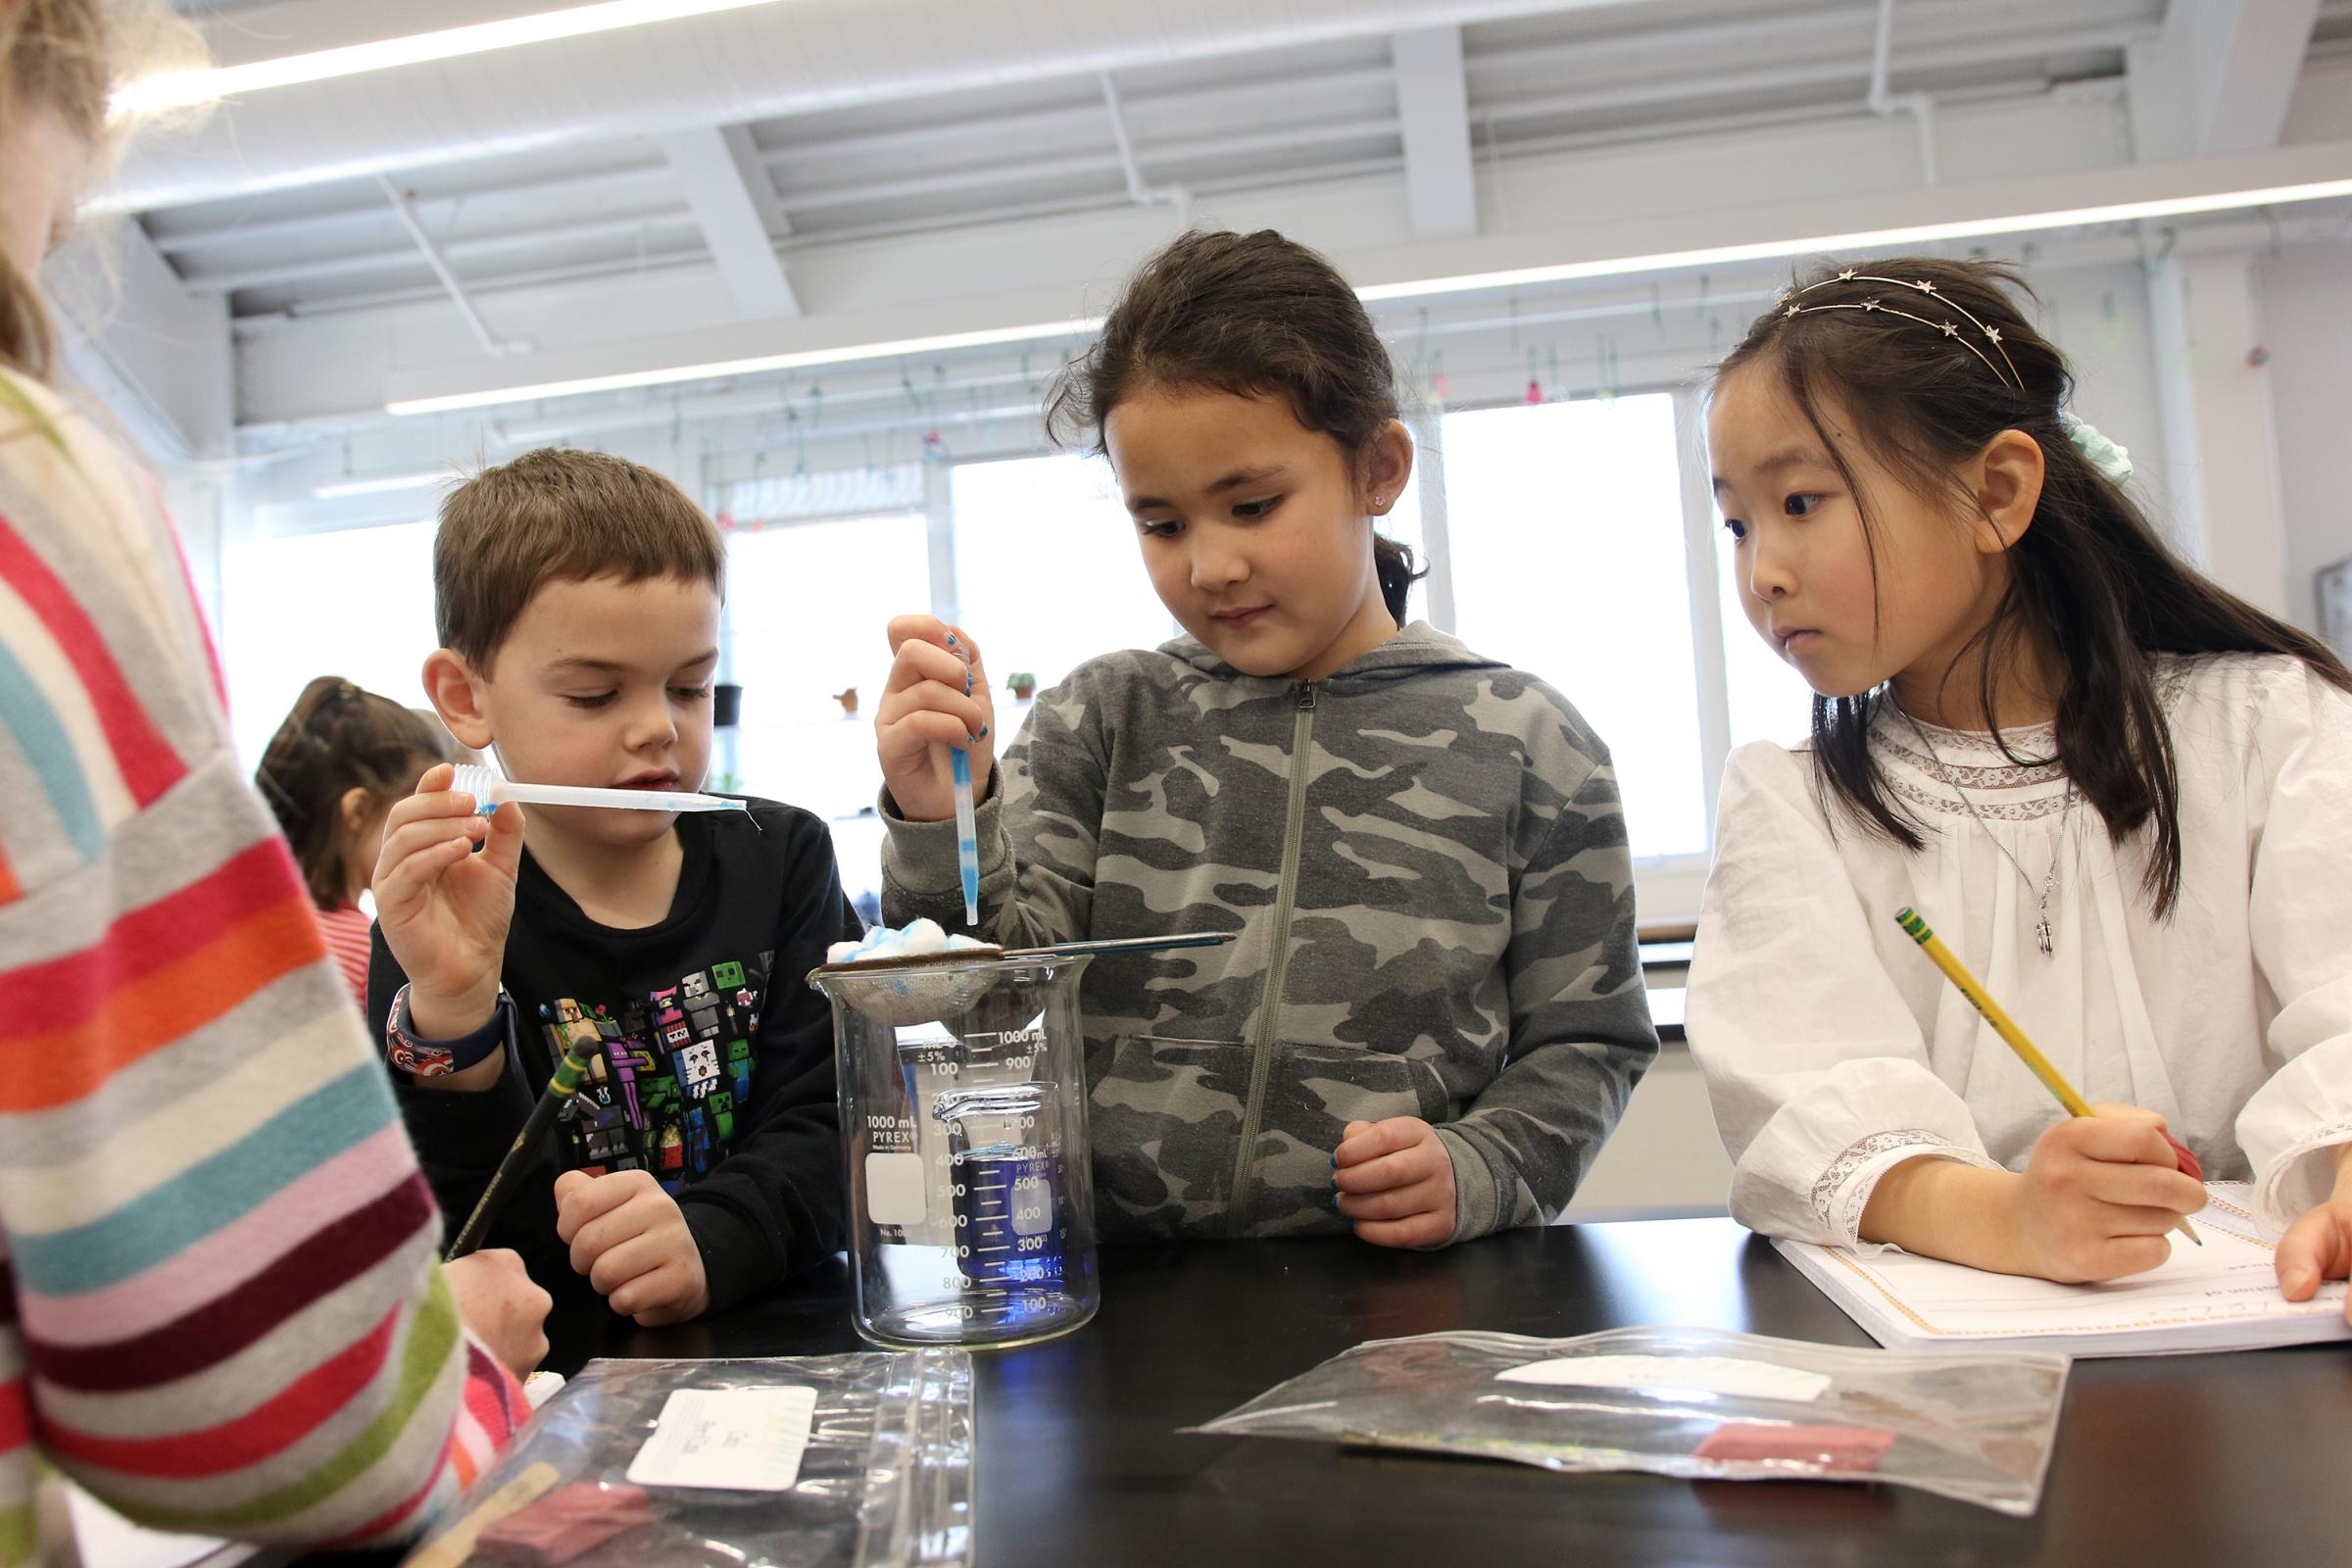 Three first graders work on a science experiment